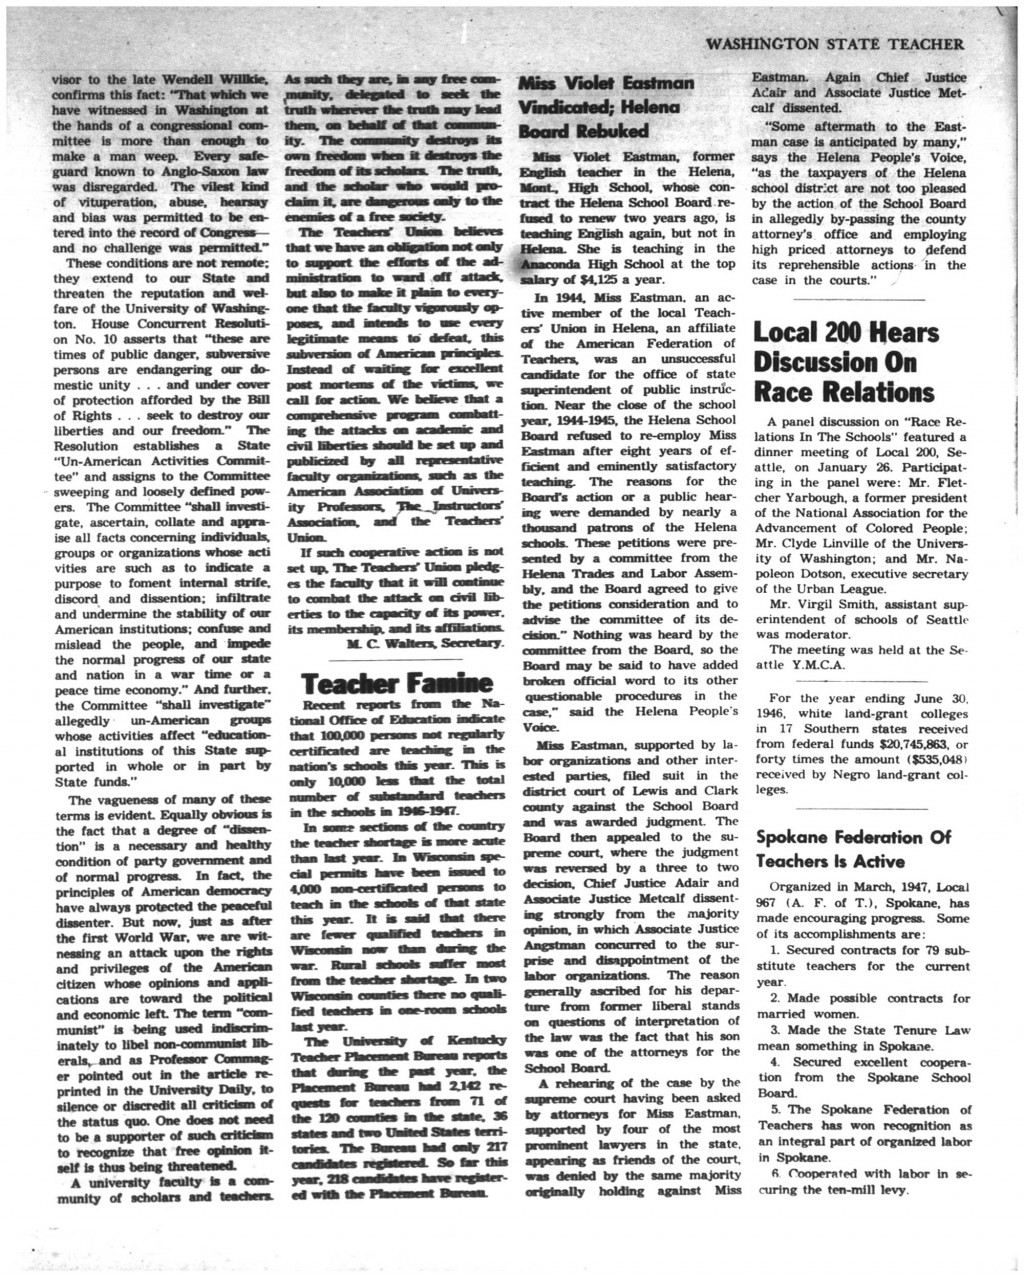 015 Concept Essay Mar1948p320uw20local20401 Race Large Fearsome On Racism Paper Examples Beauty Large